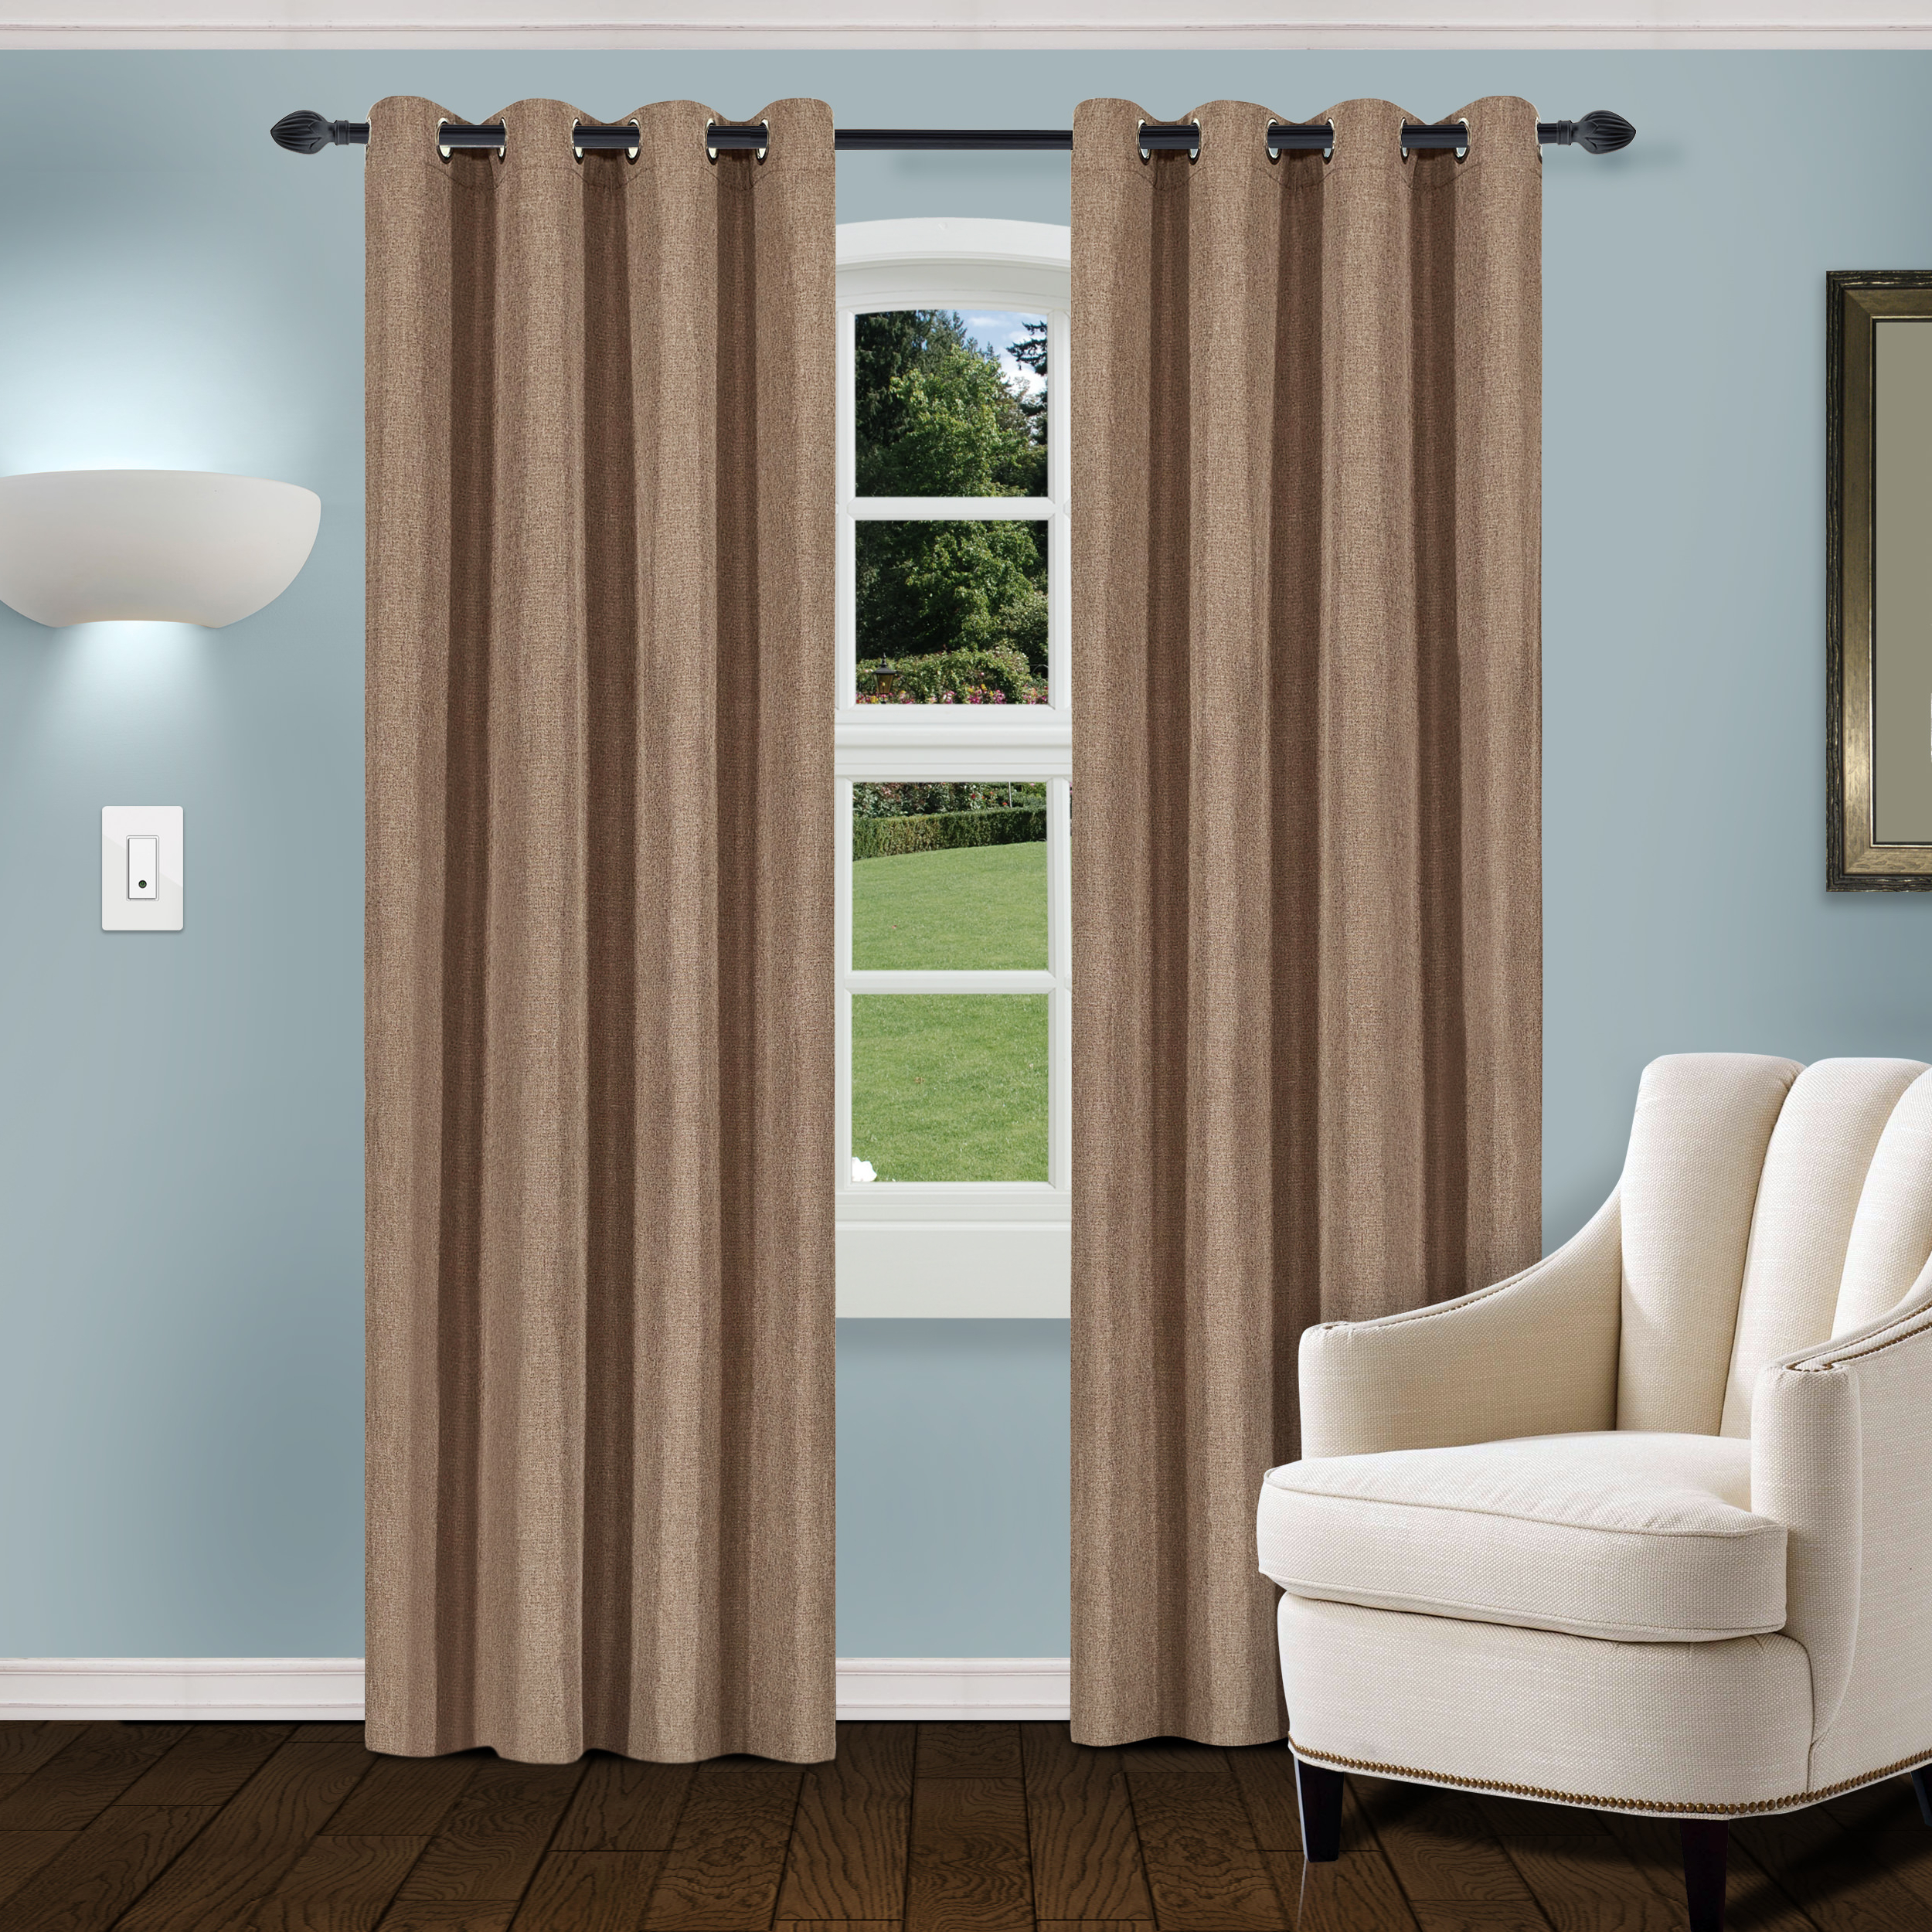 Thermal Textured Linen Grommet Top Curtain Panel Pairs Throughout Fashionable Superior Linen Textured Blackout Curtain Set Of 2 With Grommet Top Header (View 16 of 20)